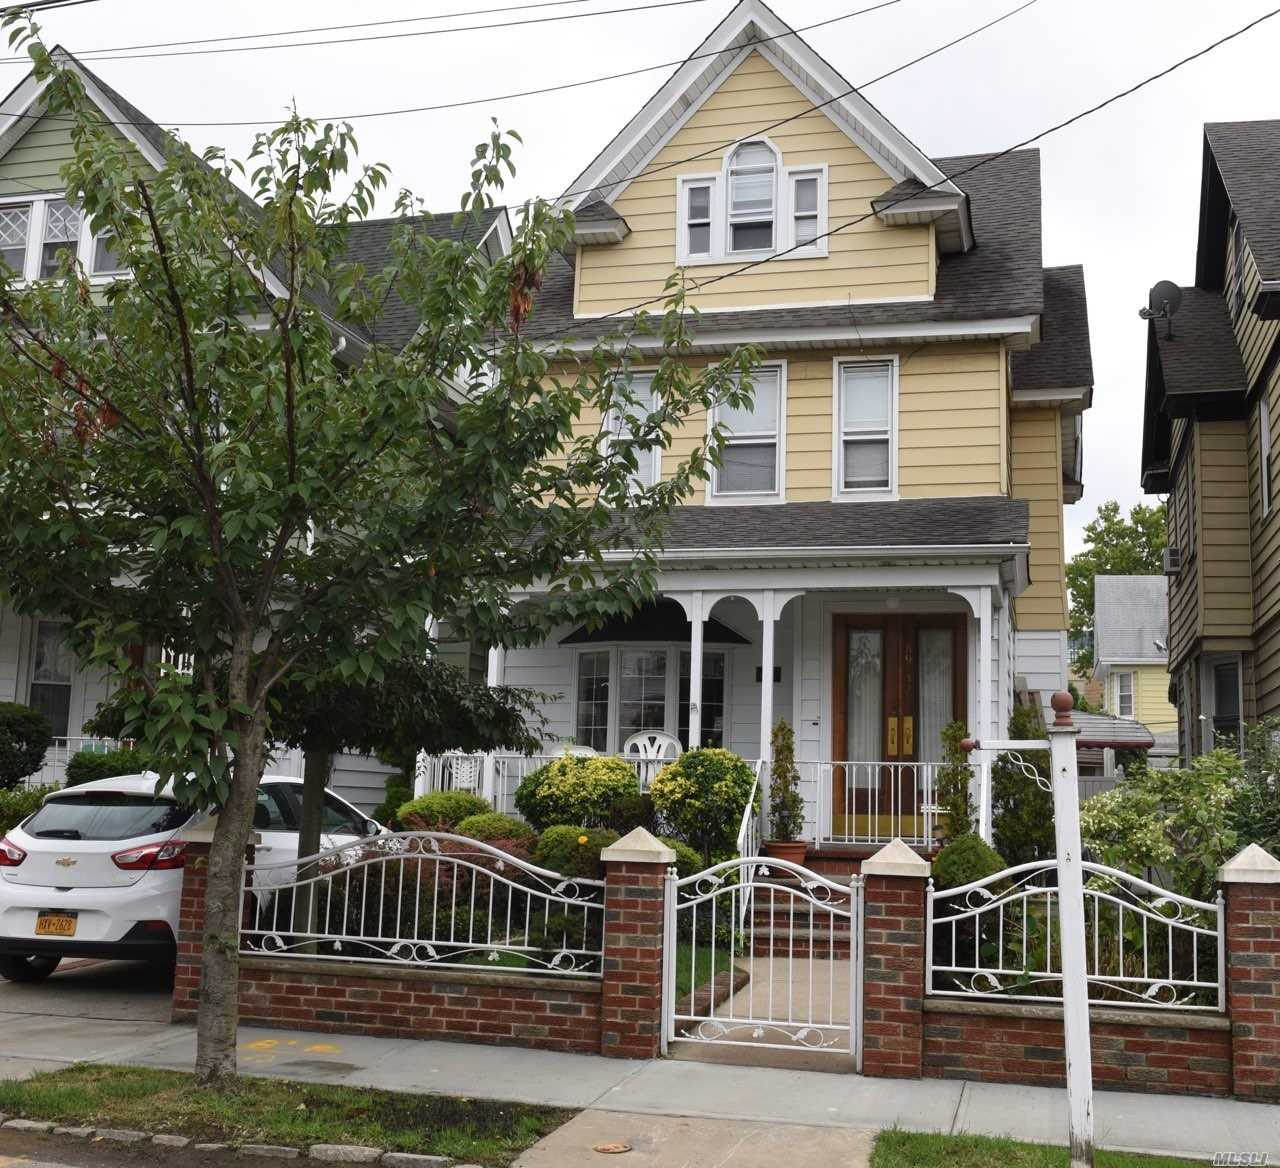 Mint Condition Det-2Fam, With Brand New Boiler, Polished Hardwood Flrs, Modern Kit On 1st Flr, Granite Tops, New Appliances. Brand New Kitchen On 2nd Flr, Granite Tops, New Fixtures/Appliances(Never Used). F/Bsmt Studio With Wet Bar! All Mint Condition. Just Move In And Start Cooking!!!!